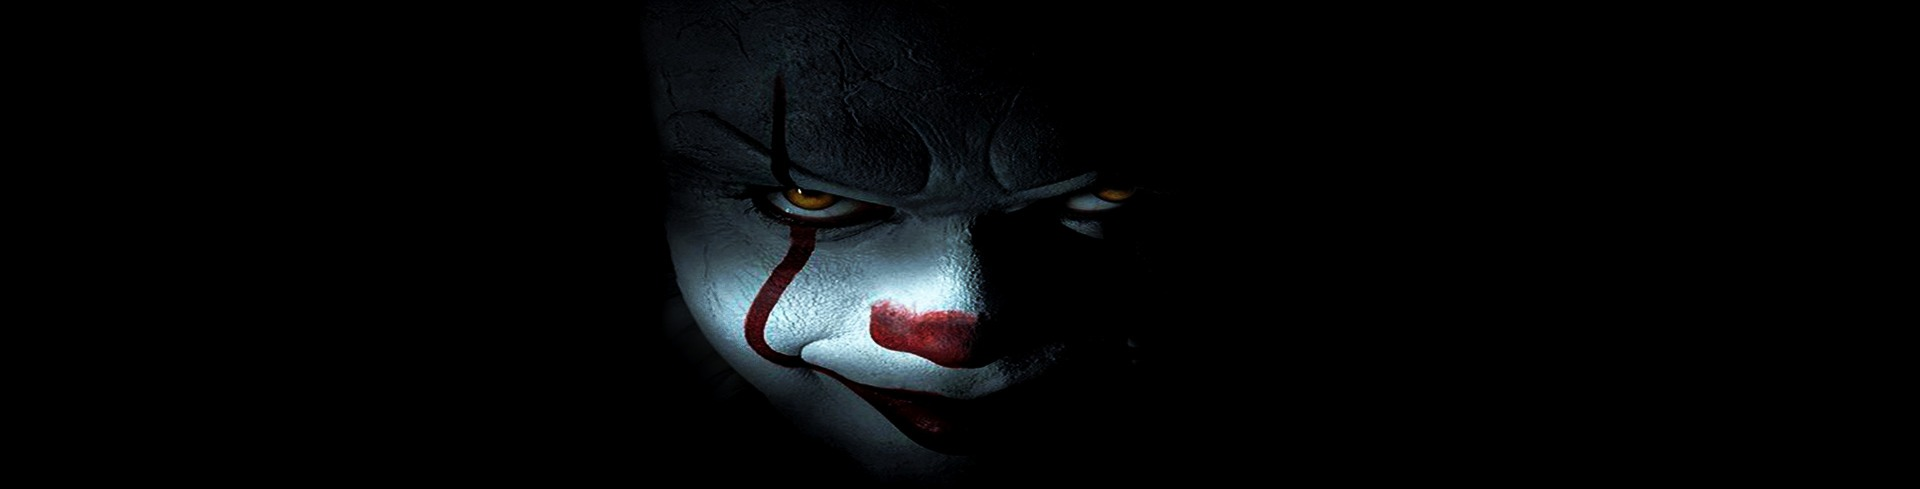 Scary Clowns & Creepy Clowns 4K Background